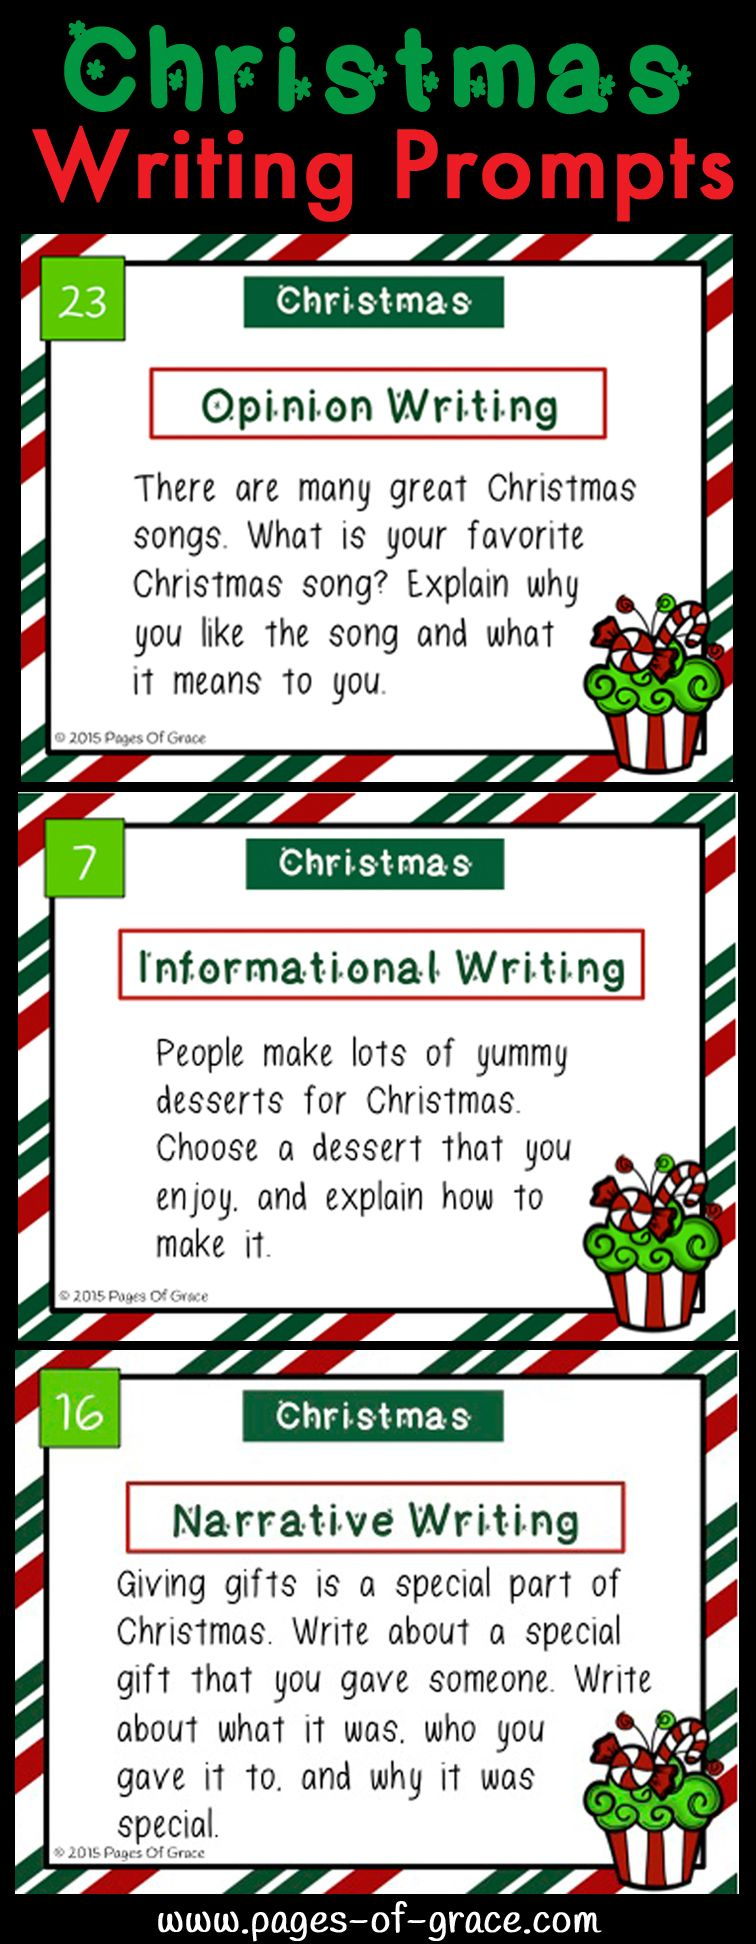 great set of christmas writing prompts 8 fun writing prompts each for opinion informational narrative writing this is a great way to tie in some